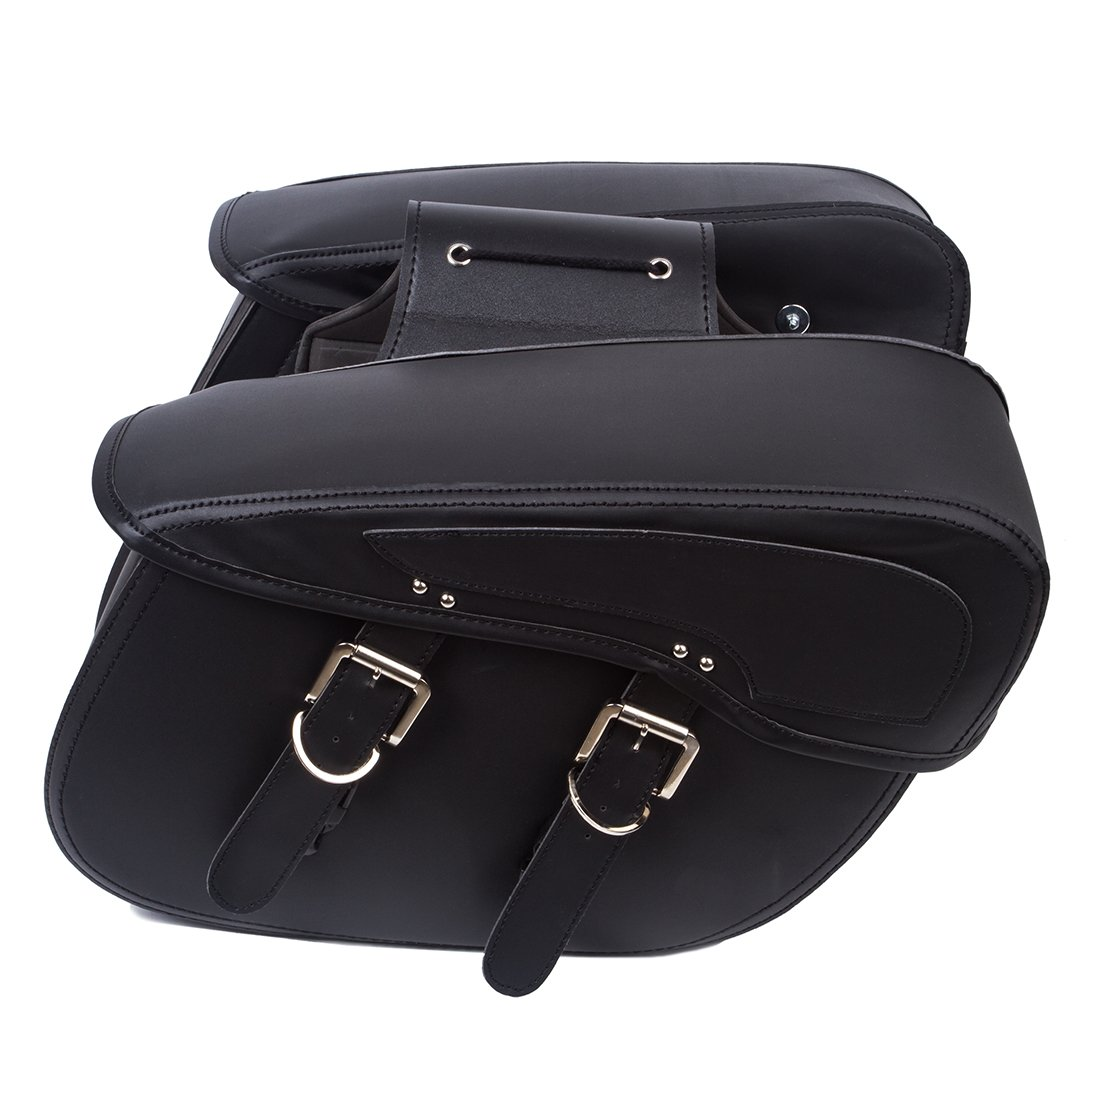 OHMOTOR 2PC Motorcycle Synthetic Leather 2-Strap Saddlebag Tool Bag Heavy-Duty Waterproof PVC